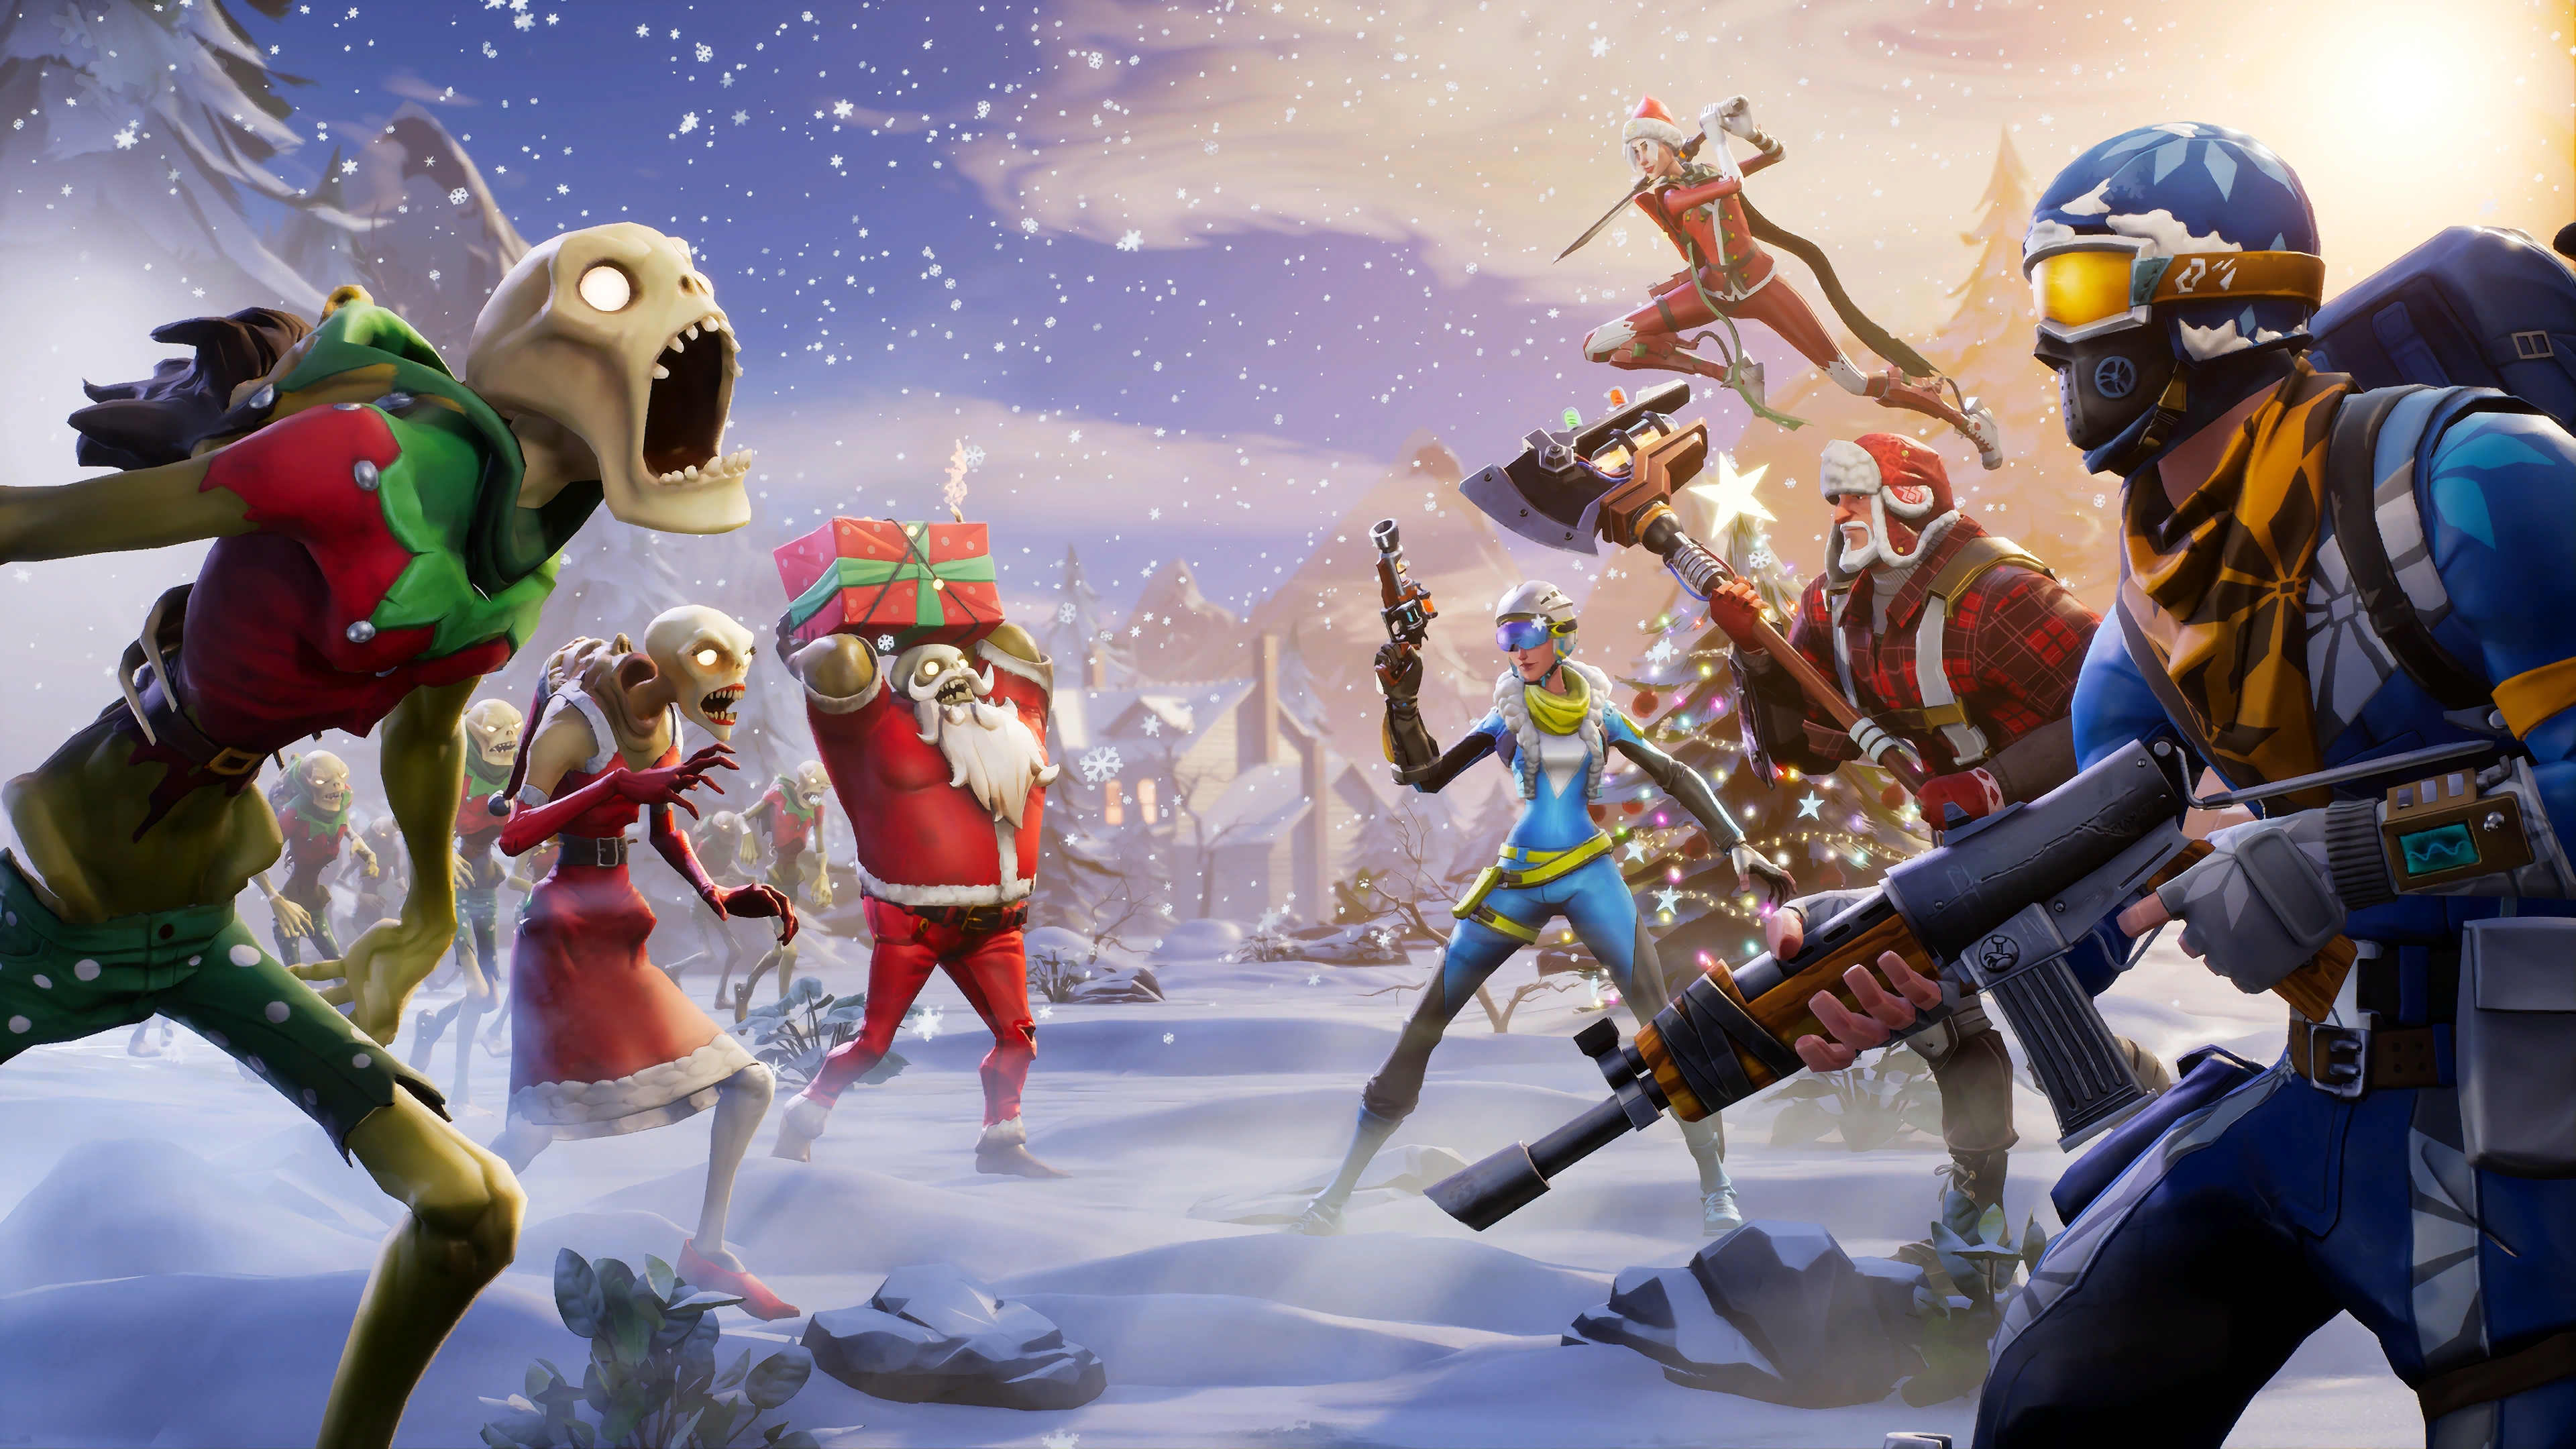 fortnite wallpaper 1440x900: Fortnite Winter Season, HD Games, 4k Wallpapers, Images